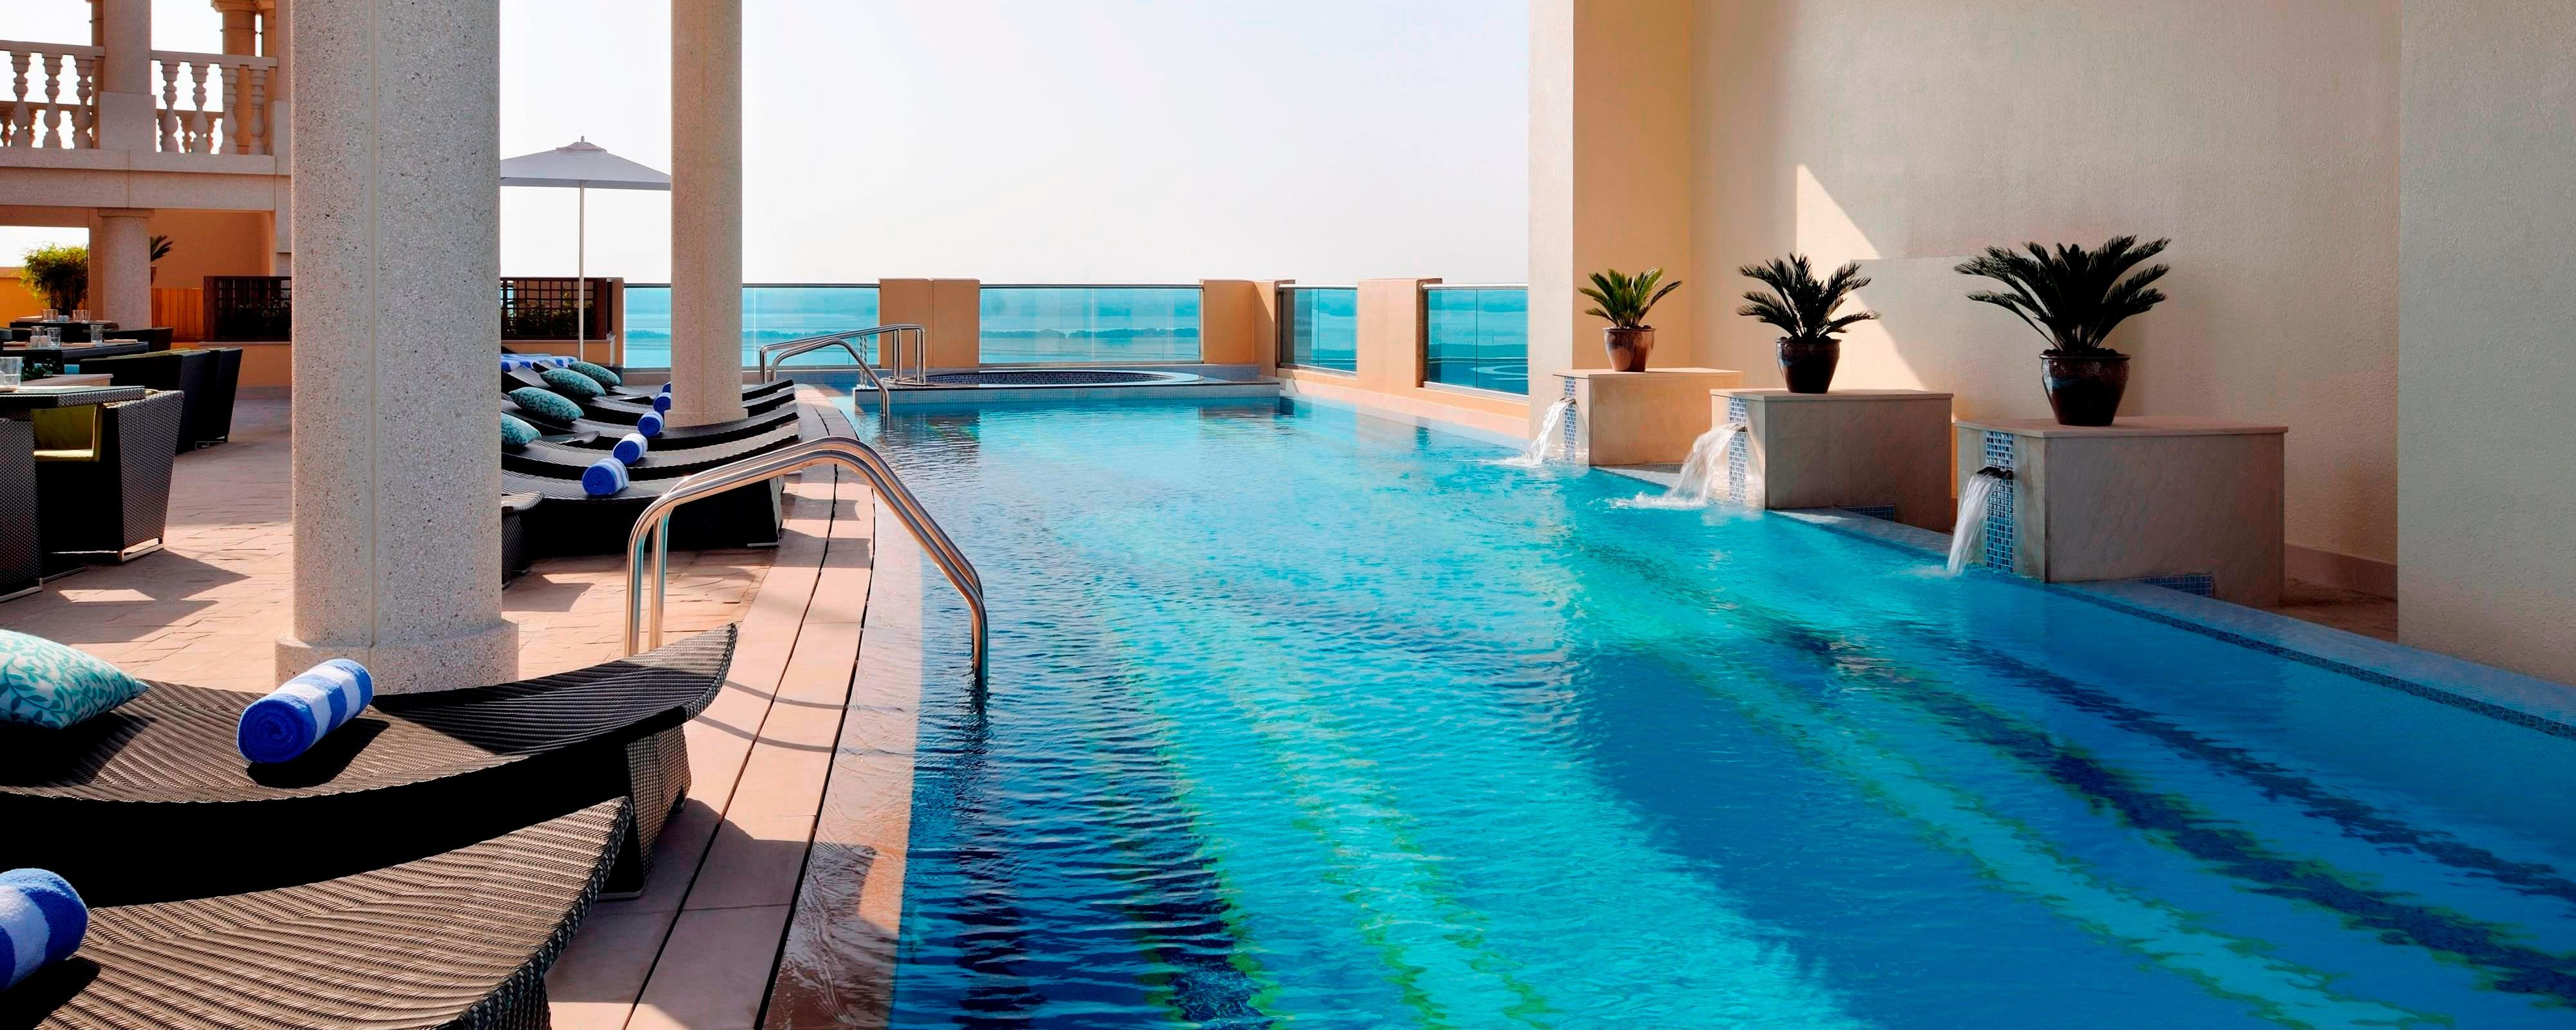 Dubai hotel with outdoor pool